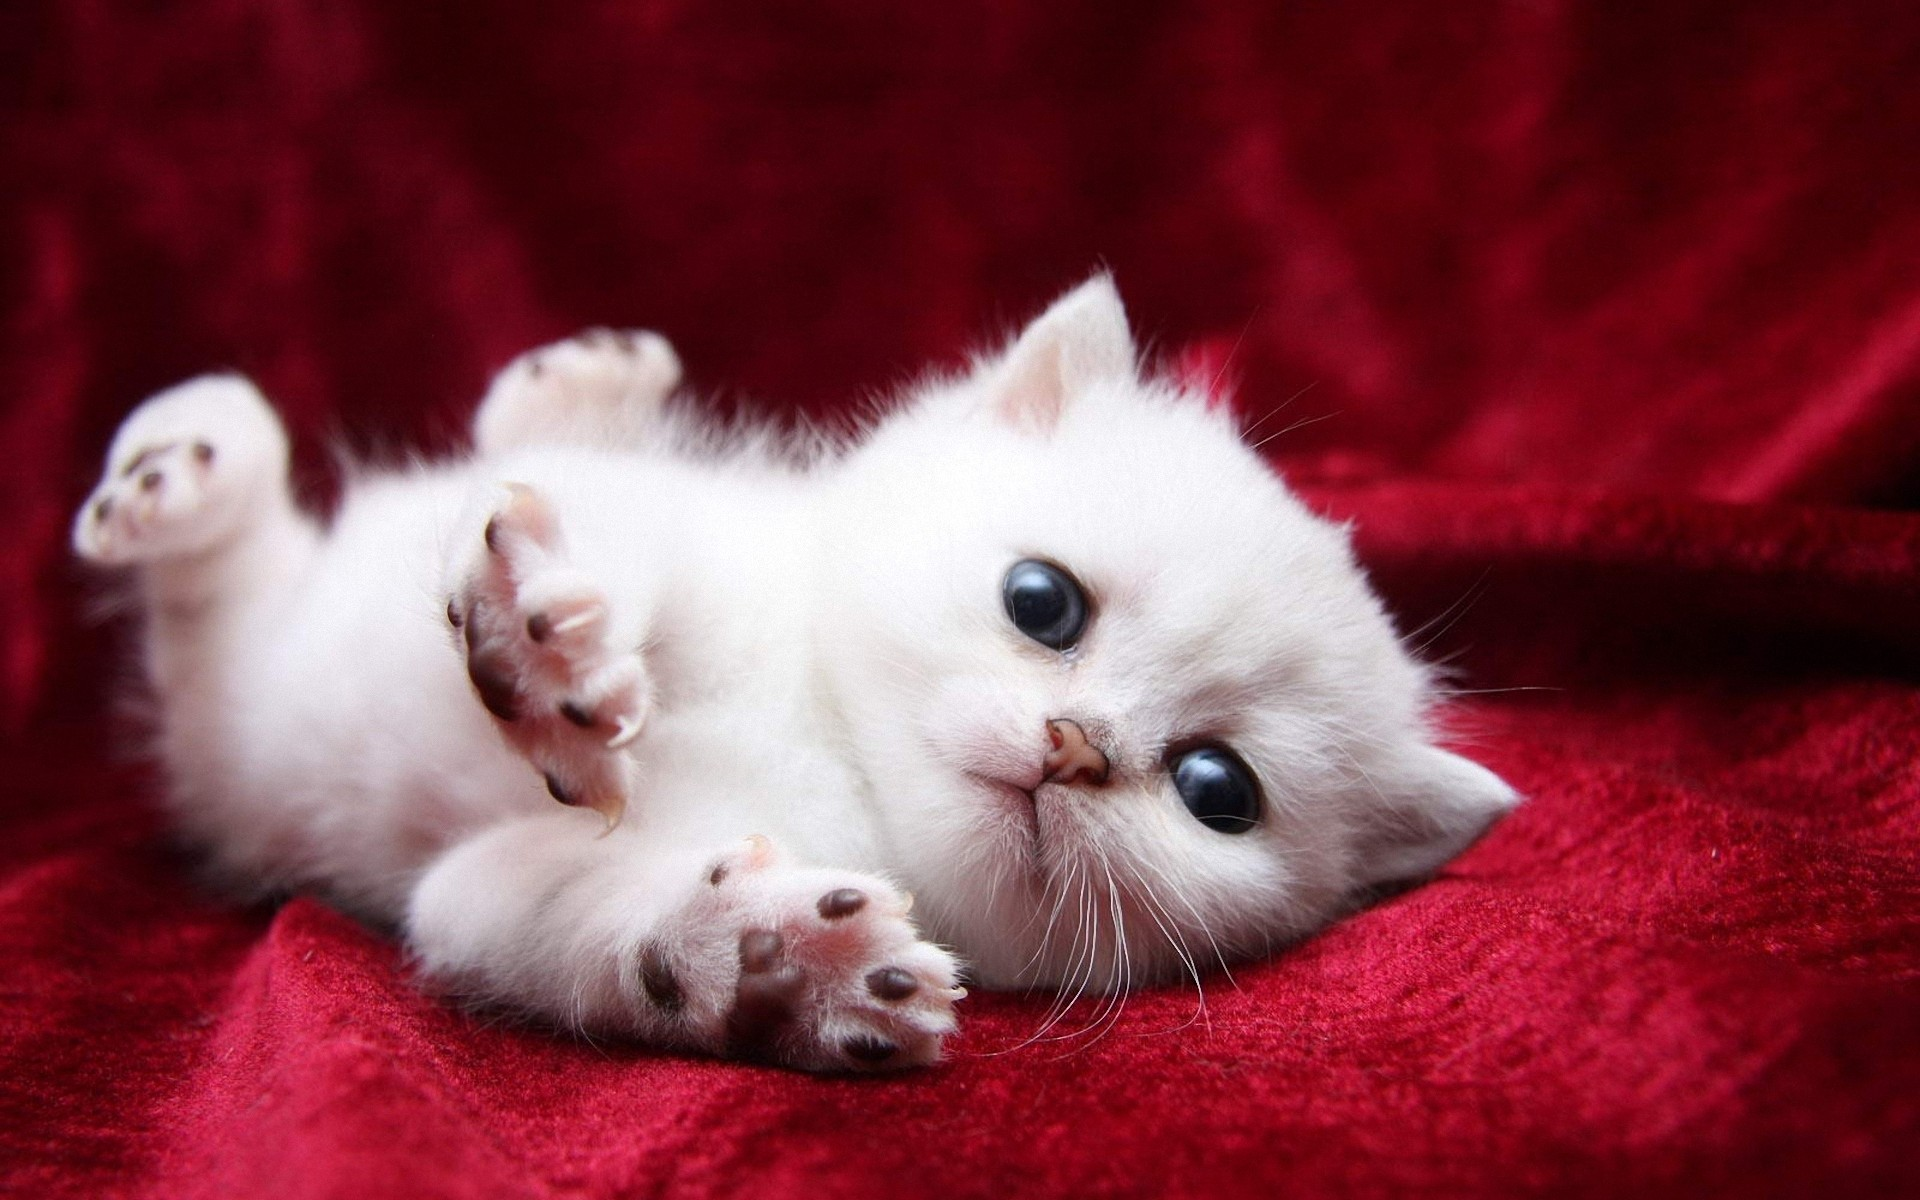 Little white fluffy kitten, photo wallpaper